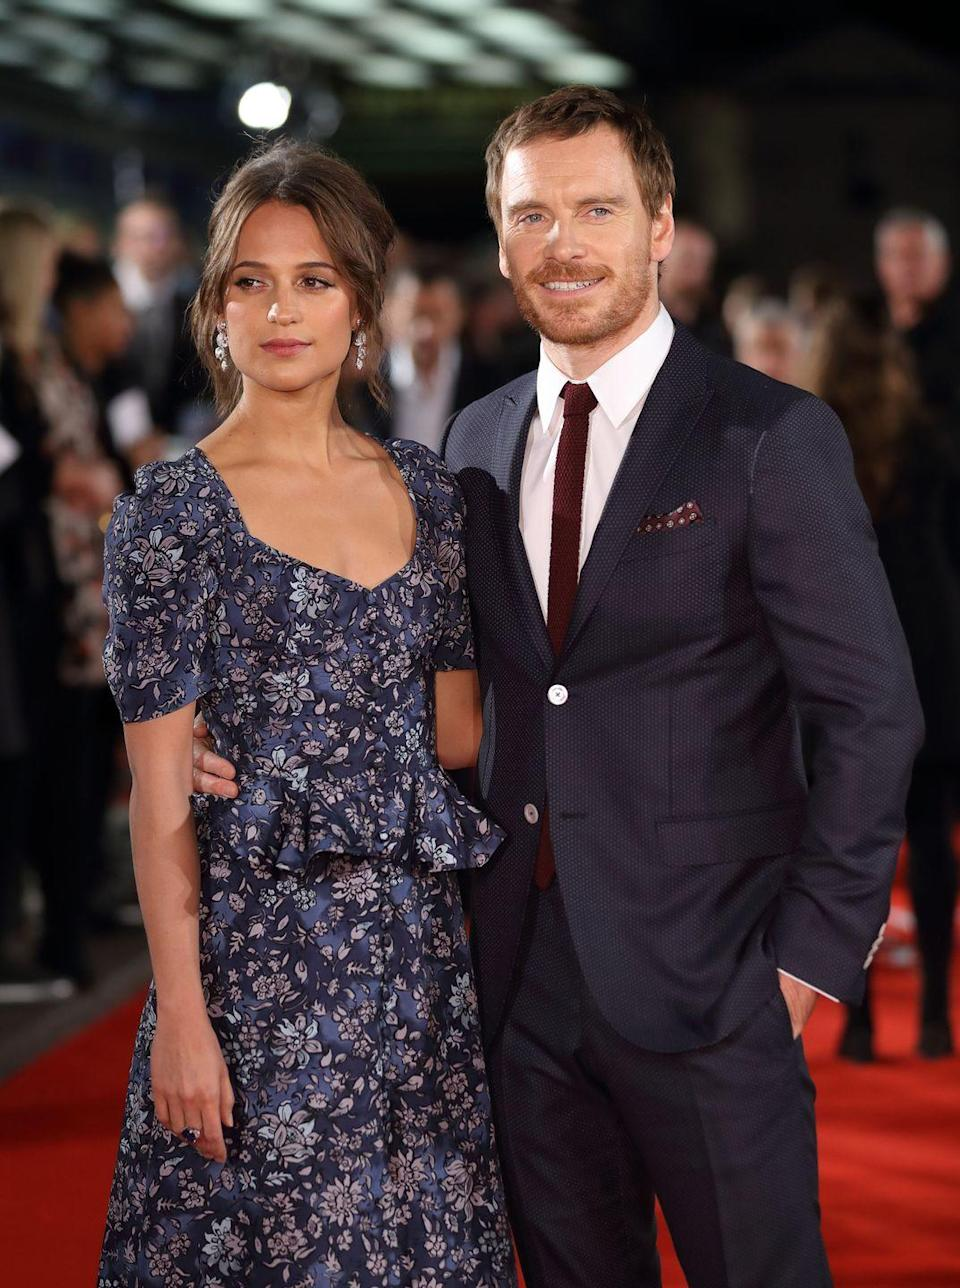 "<p>Alicia Vikander, 31, and husband Michael Fassbender, 43, started dating back in 2014 after meeting on the set of <em>The Light Between Oceans</em>. The lovebirds kept it low-key for the cameras at the beginning of their relationship, but were outed as a newlyweds after they returned from their <a href=""https://www.harpersbazaar.com/celebrity/latest/a13031336/alicia-vikander-michael-fassbender-married/"" rel=""nofollow noopener"" target=""_blank"" data-ylk=""slk:incognito wedding in Ibiza"" class=""link rapid-noclick-resp"">incognito wedding in Ibiza</a> in 2017.</p>"